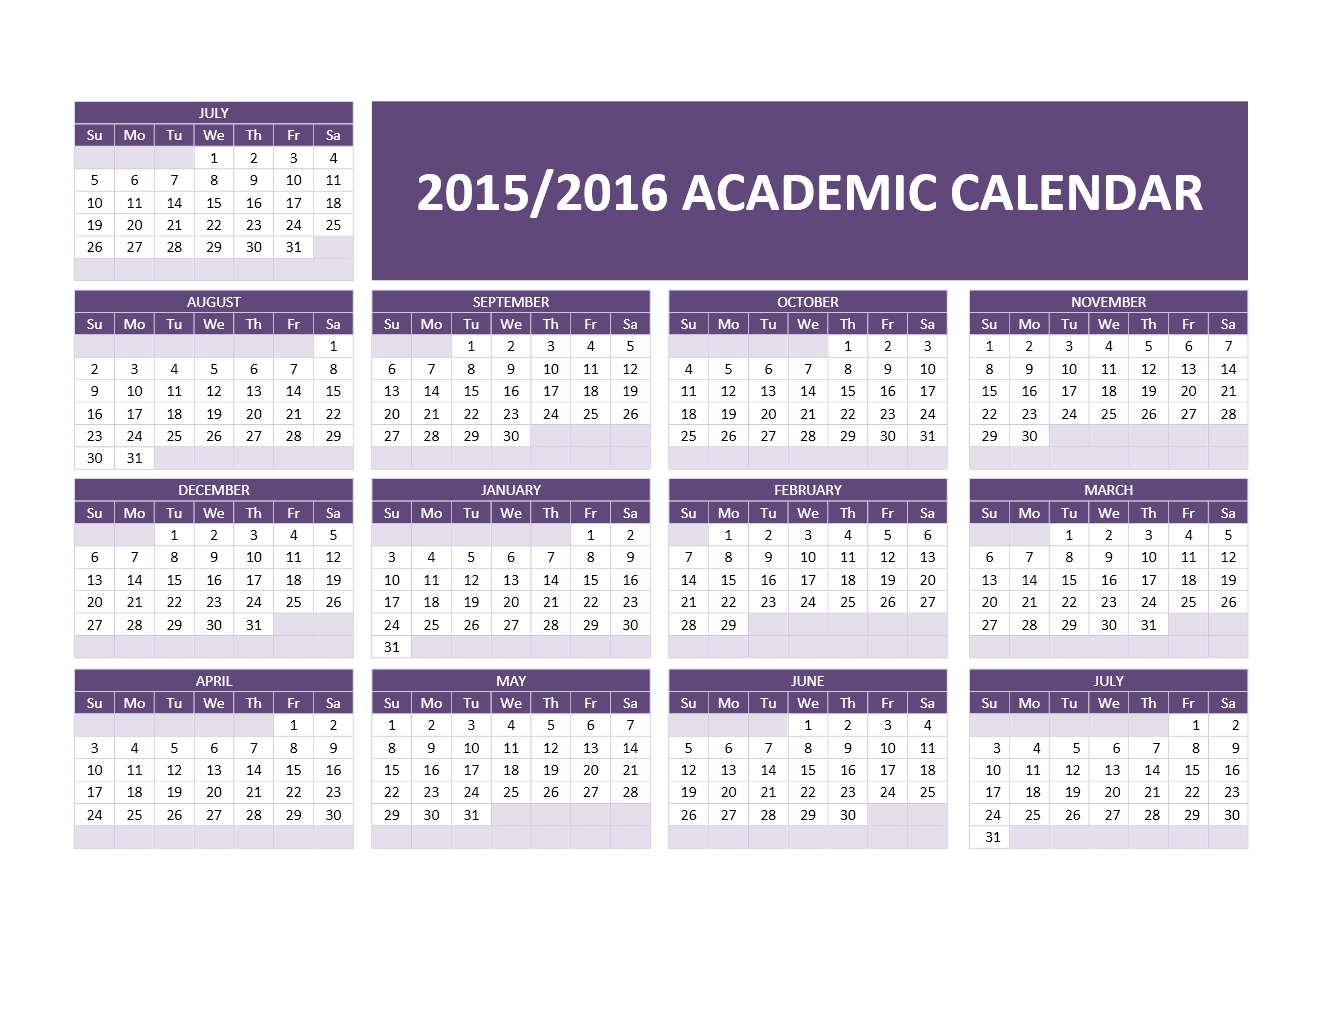 2015/2016 Academic Calendar Templates | Freewordtemplates.net